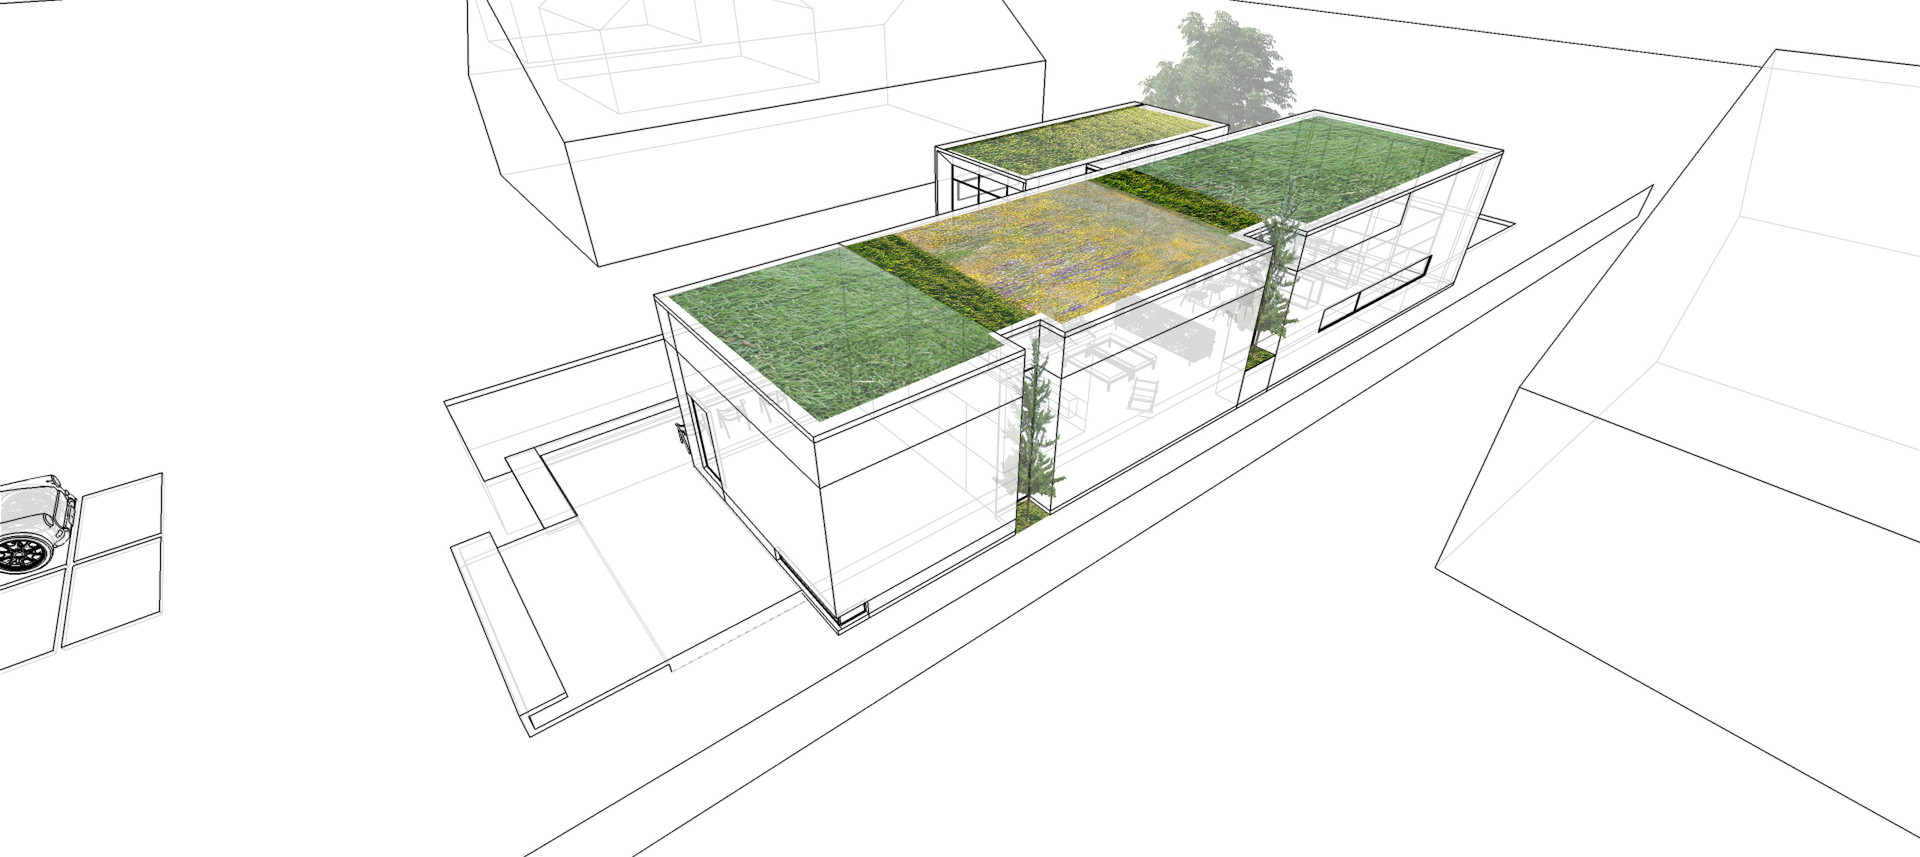 Accessible green roof for views and connection with the existing tree canopy.